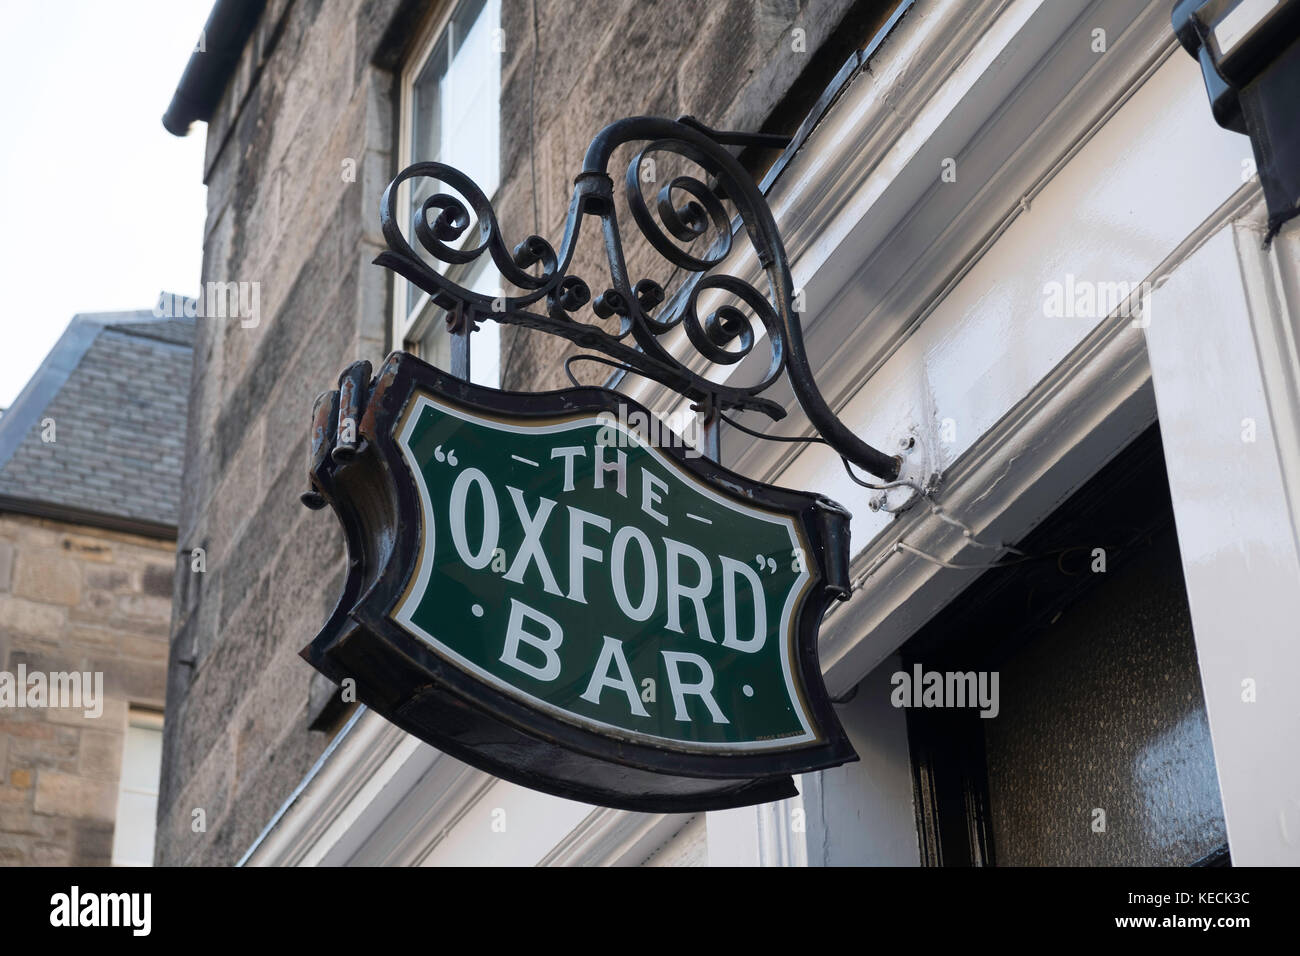 Oxford Bar in Edinburgh featured in Ian Rankin's crime novels about Inspector Rebus - Stock Image